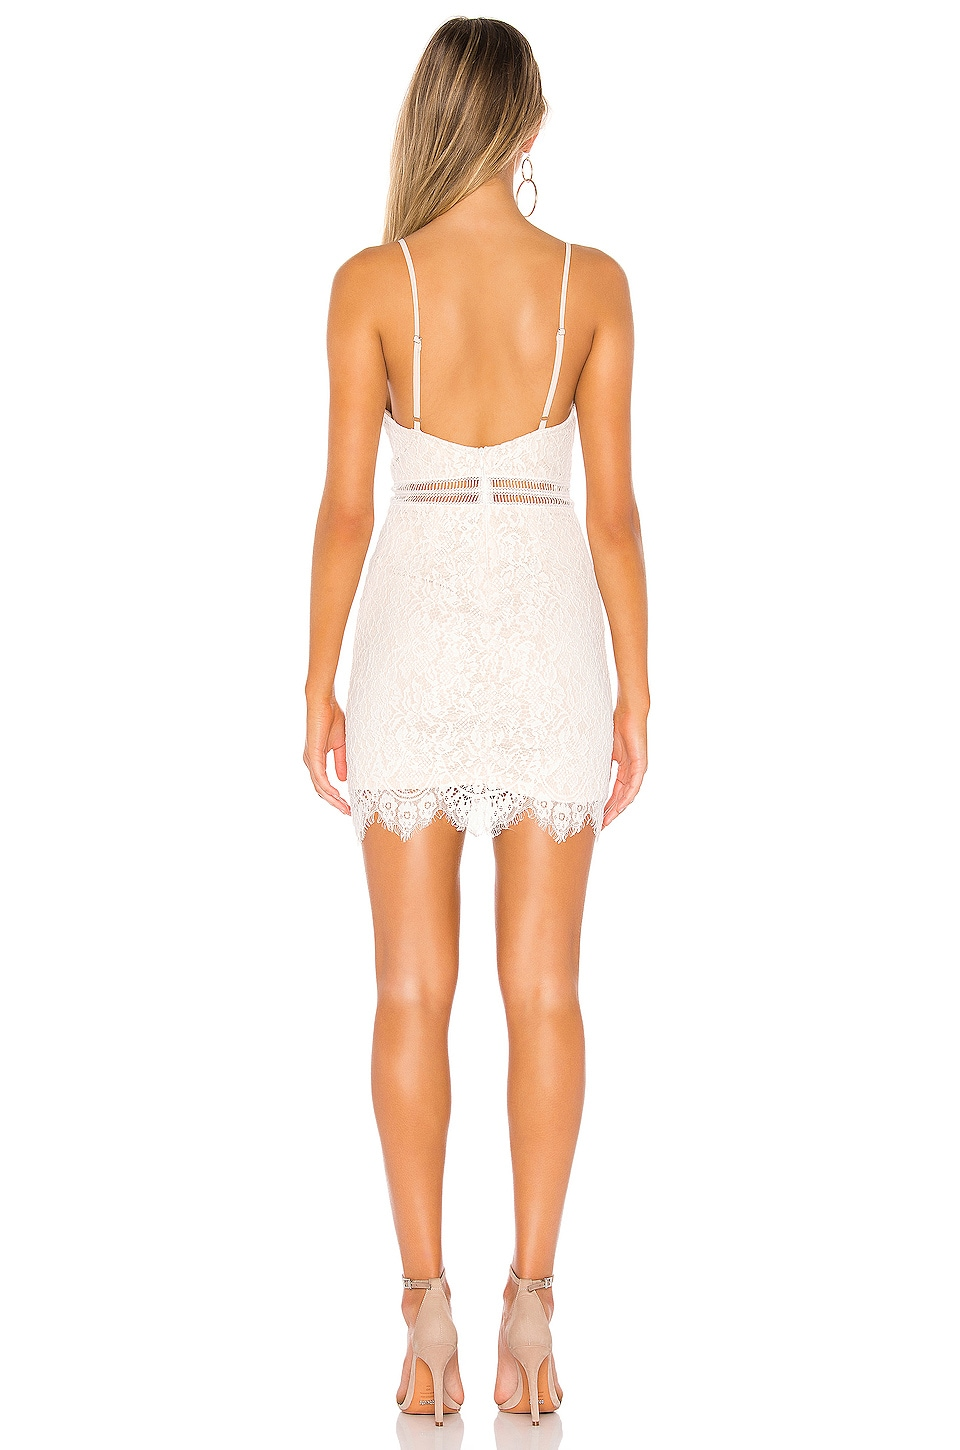 Remi Lace Mini Dress, view 3, click to view large image.